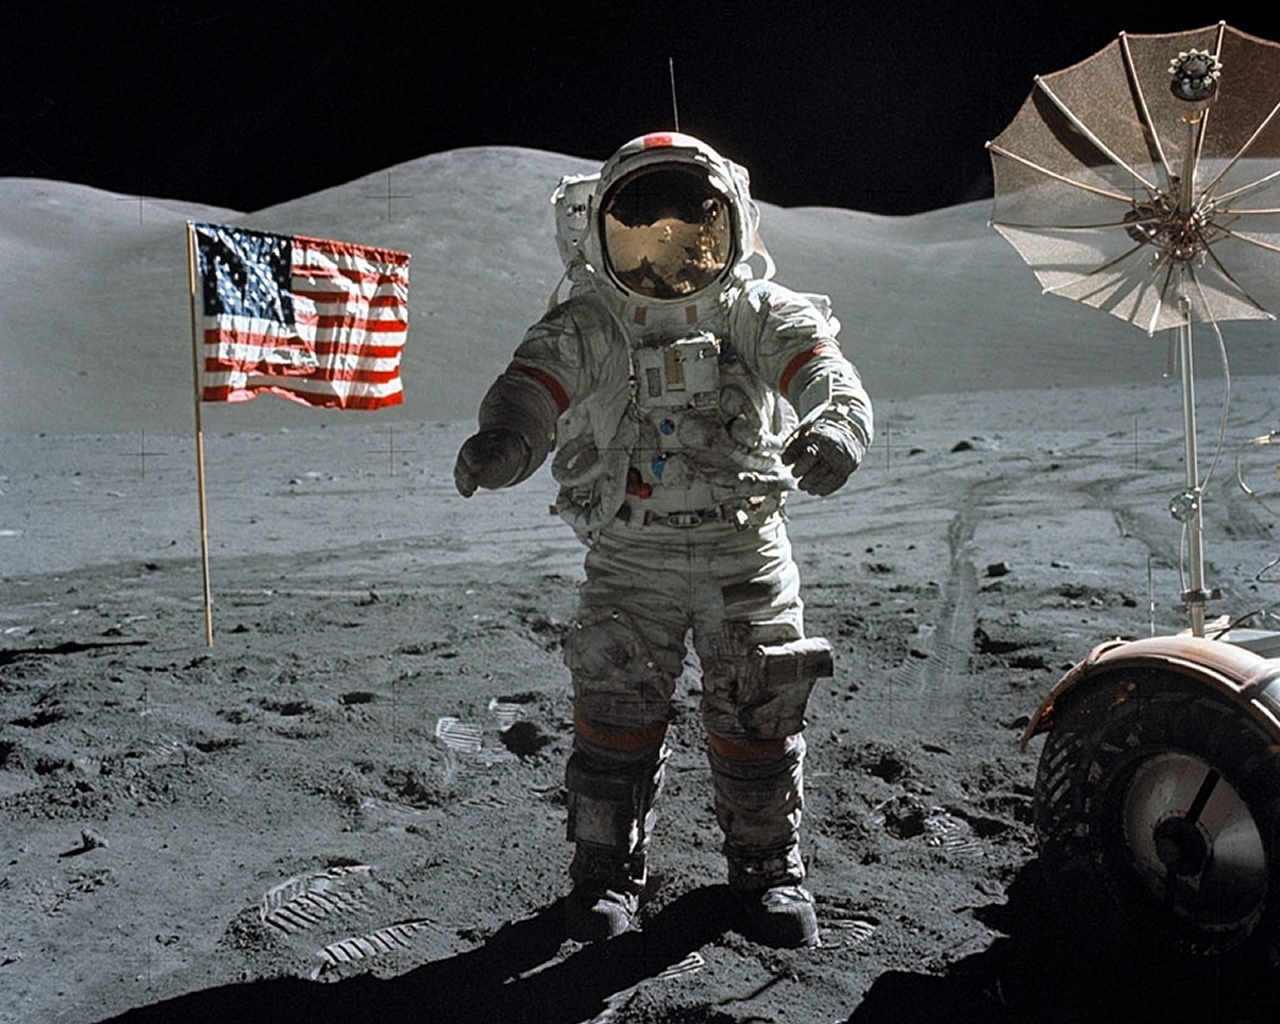 Last moonwalk Apollo 17